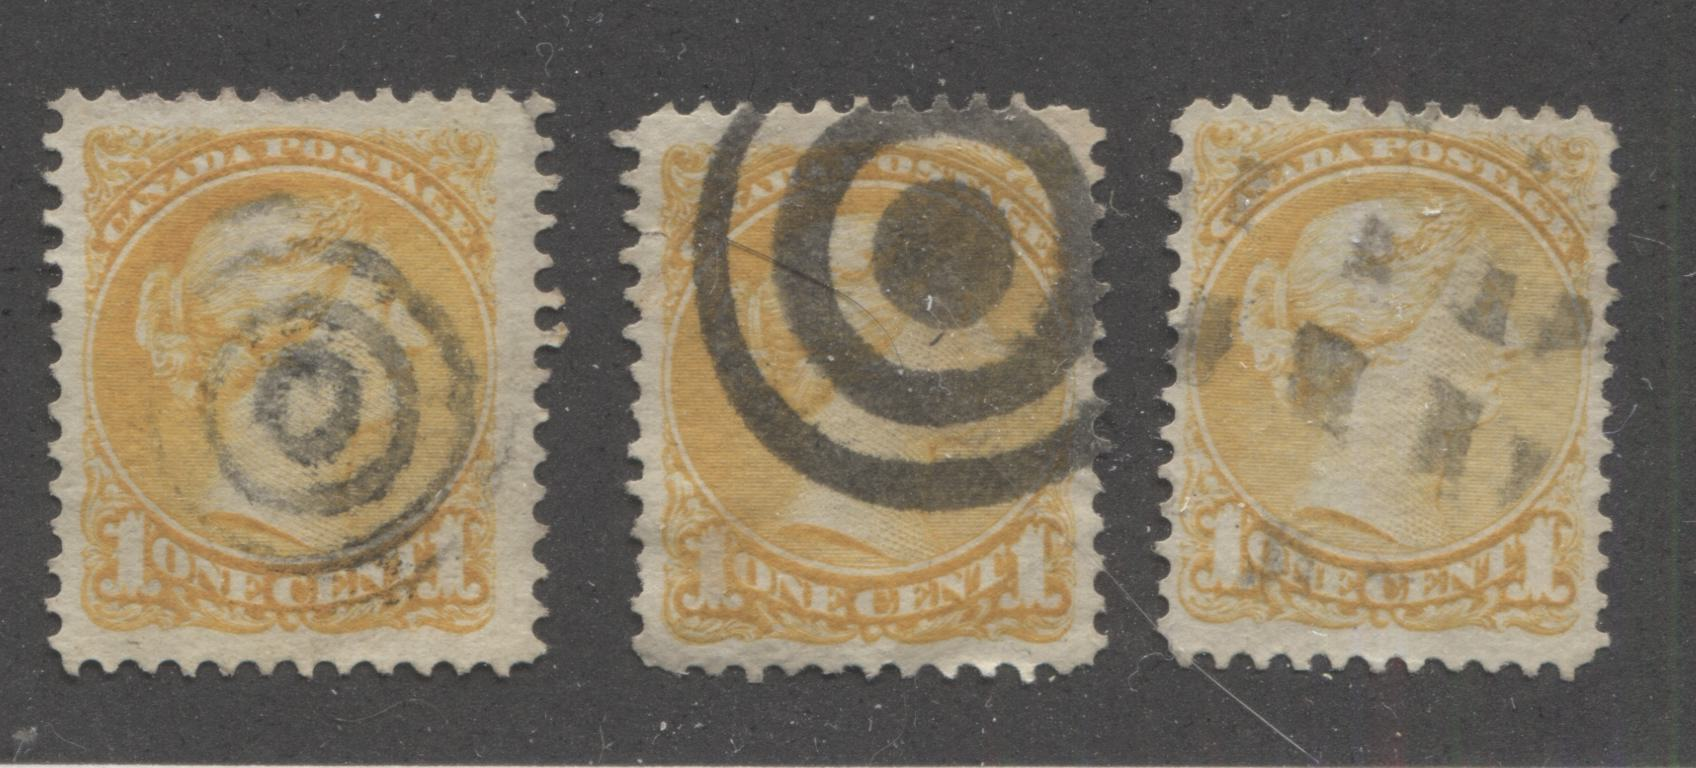 Canada #35i 1c Yellow Queen Victoria, 1870-1897 Small Queen Issue, Three Very Fine or Fine Used Examples of the Mid to Late Montreal Printing, Each a Different Shade or Paper, Perf. 12, Cancelled With Different Fancy Cancellations Brixton Chrome